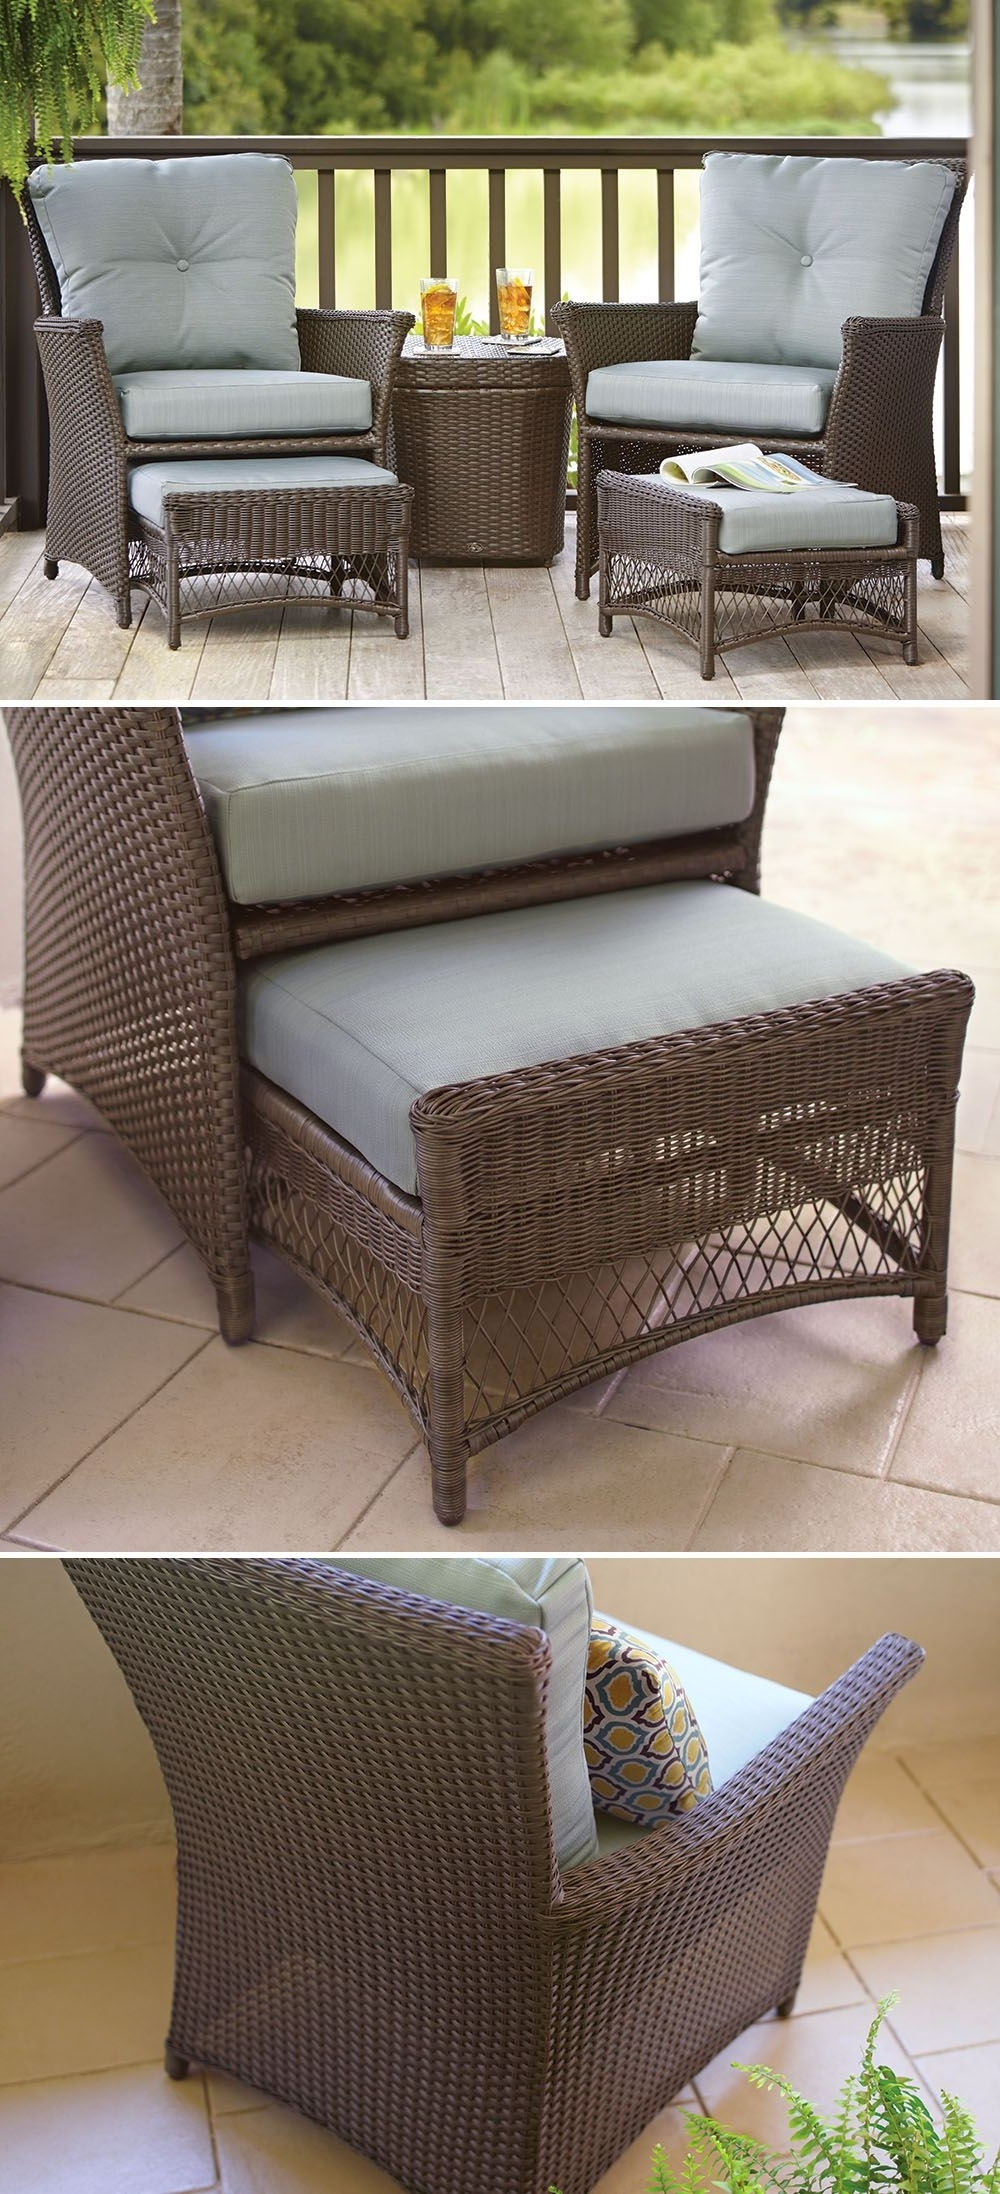 Patio Conversation Sets With Storage Throughout Famous This Affordable Patio Set Is Just The Right Size For Your Small (View 6 of 15)